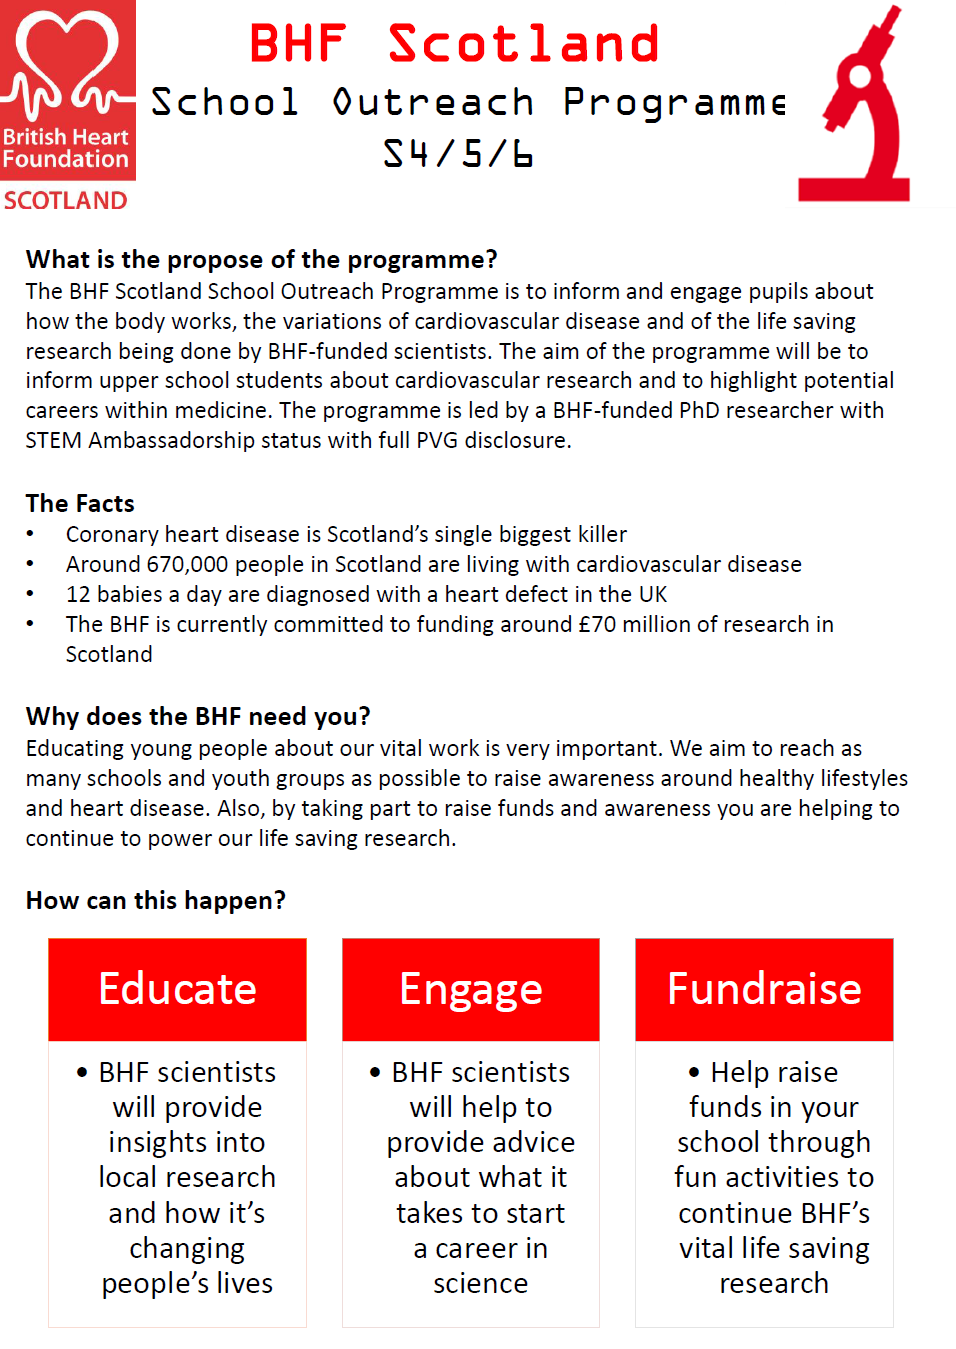 Help Year 4 Circuit Components Word Mat Science Electricity Ks2 The British Heart Foundation Team Based At Queens Medical Research Institute In Edinburgh Have Outreach Workshops On Offer For Schools Free Of Charge